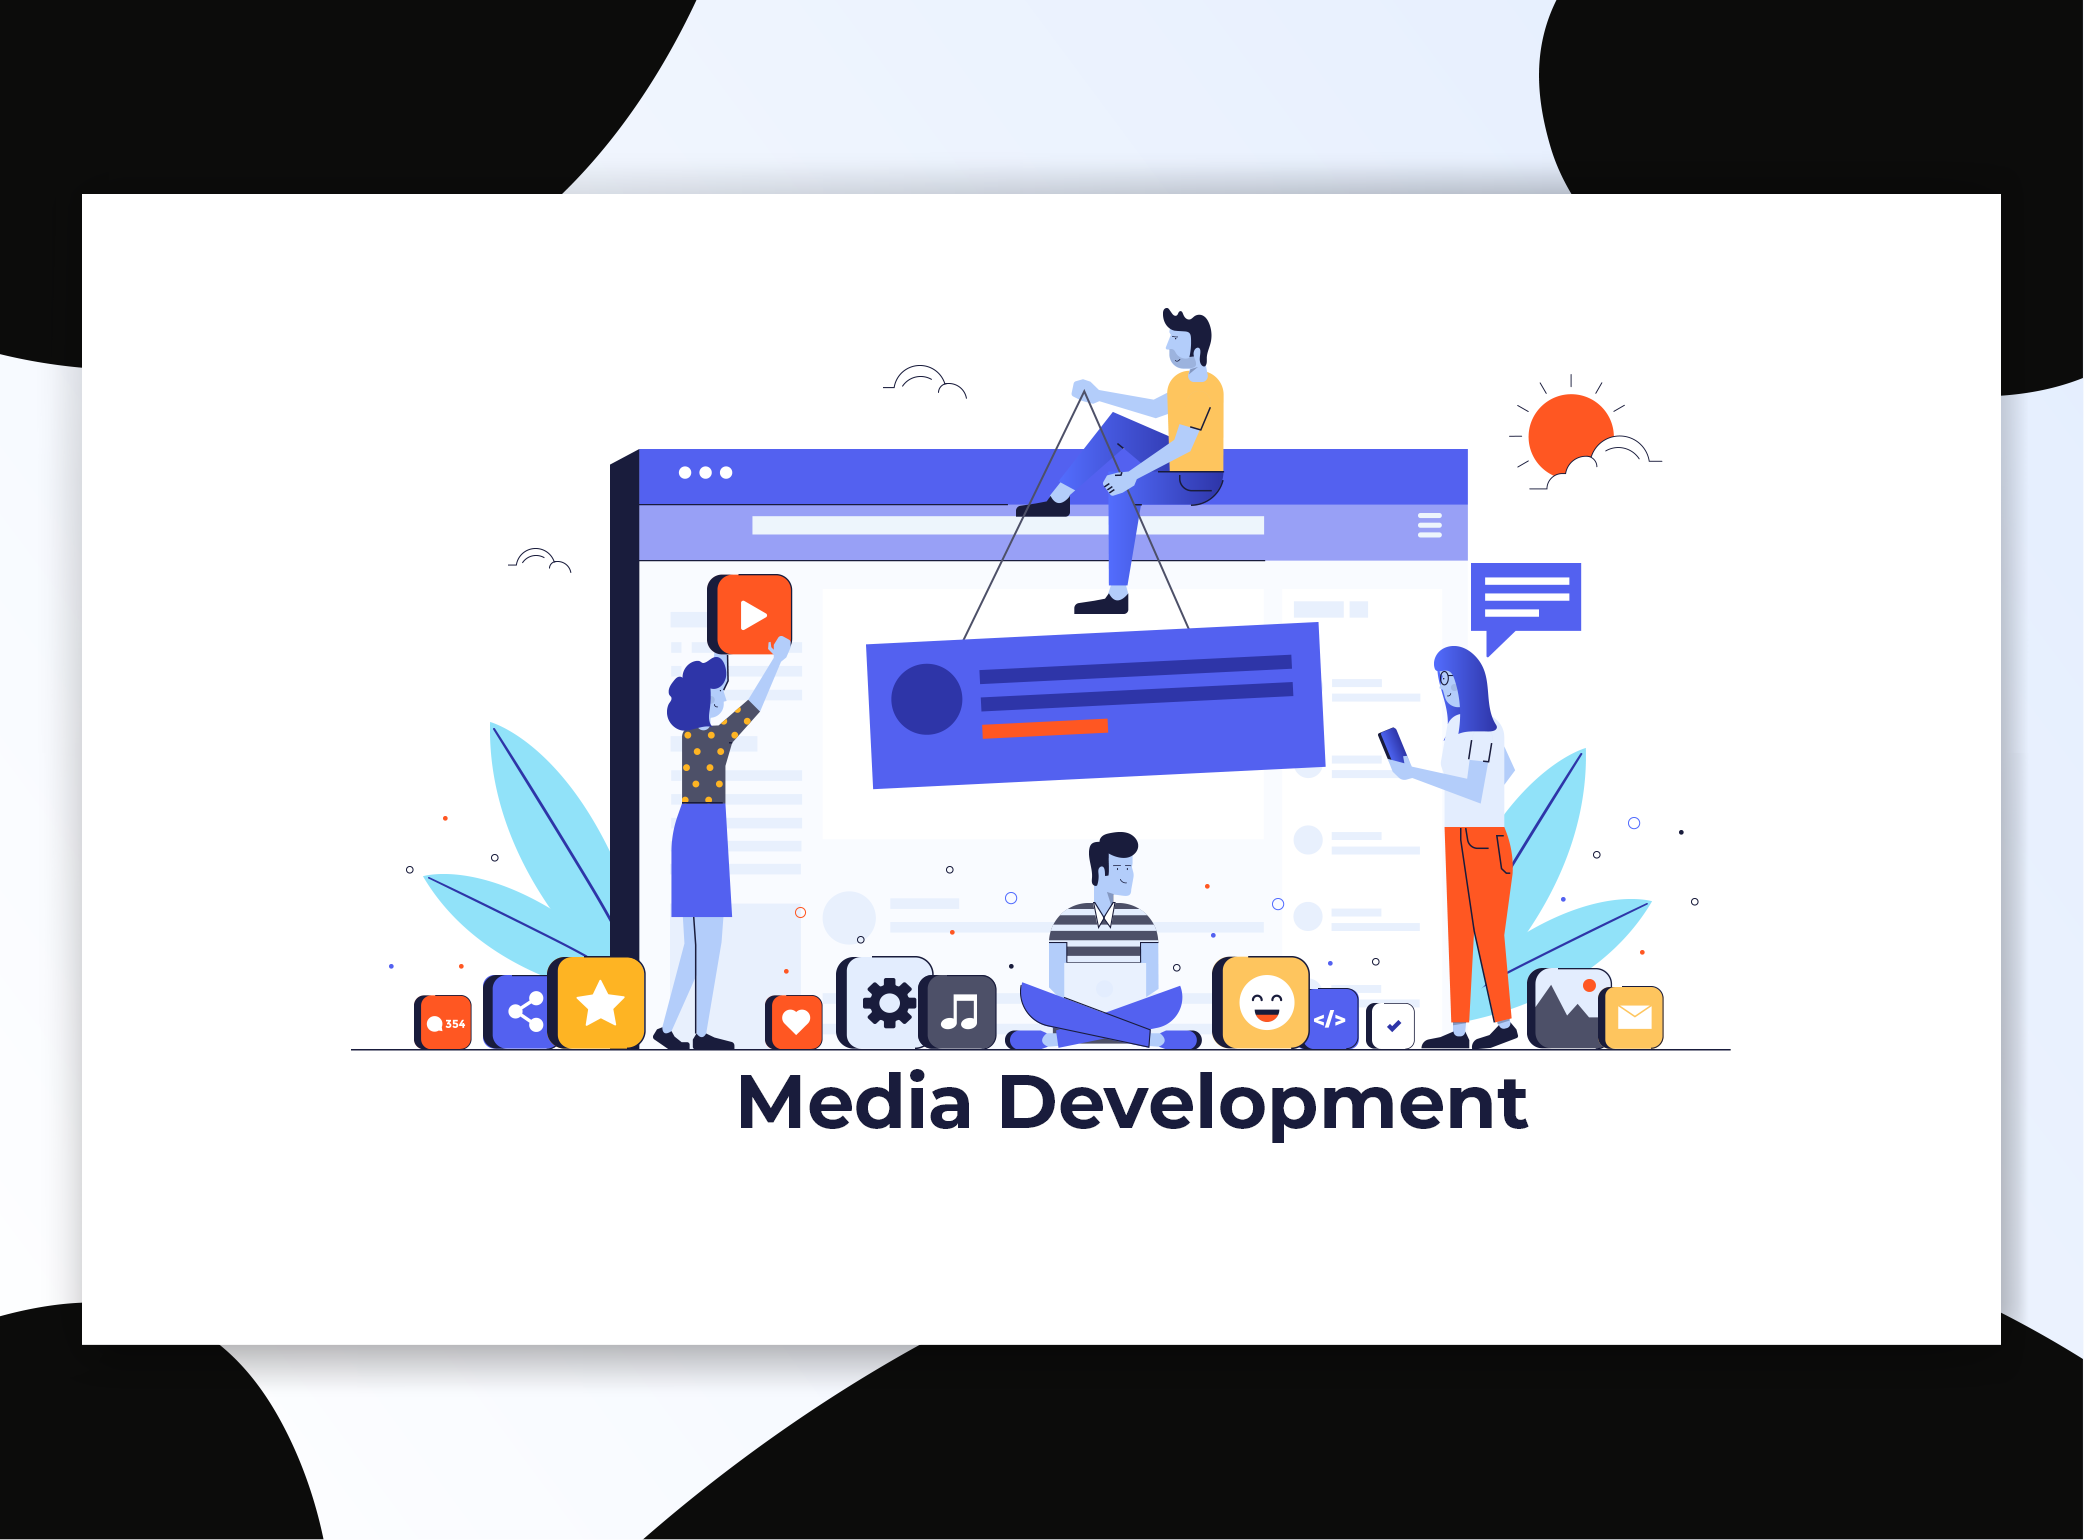 Media Development, Social Media Marketing, Media Productions, Video Editing, Video Production for Healthcare Marketing, Physical Therapy Marketing, Educational Marketing, and Technology Marketing